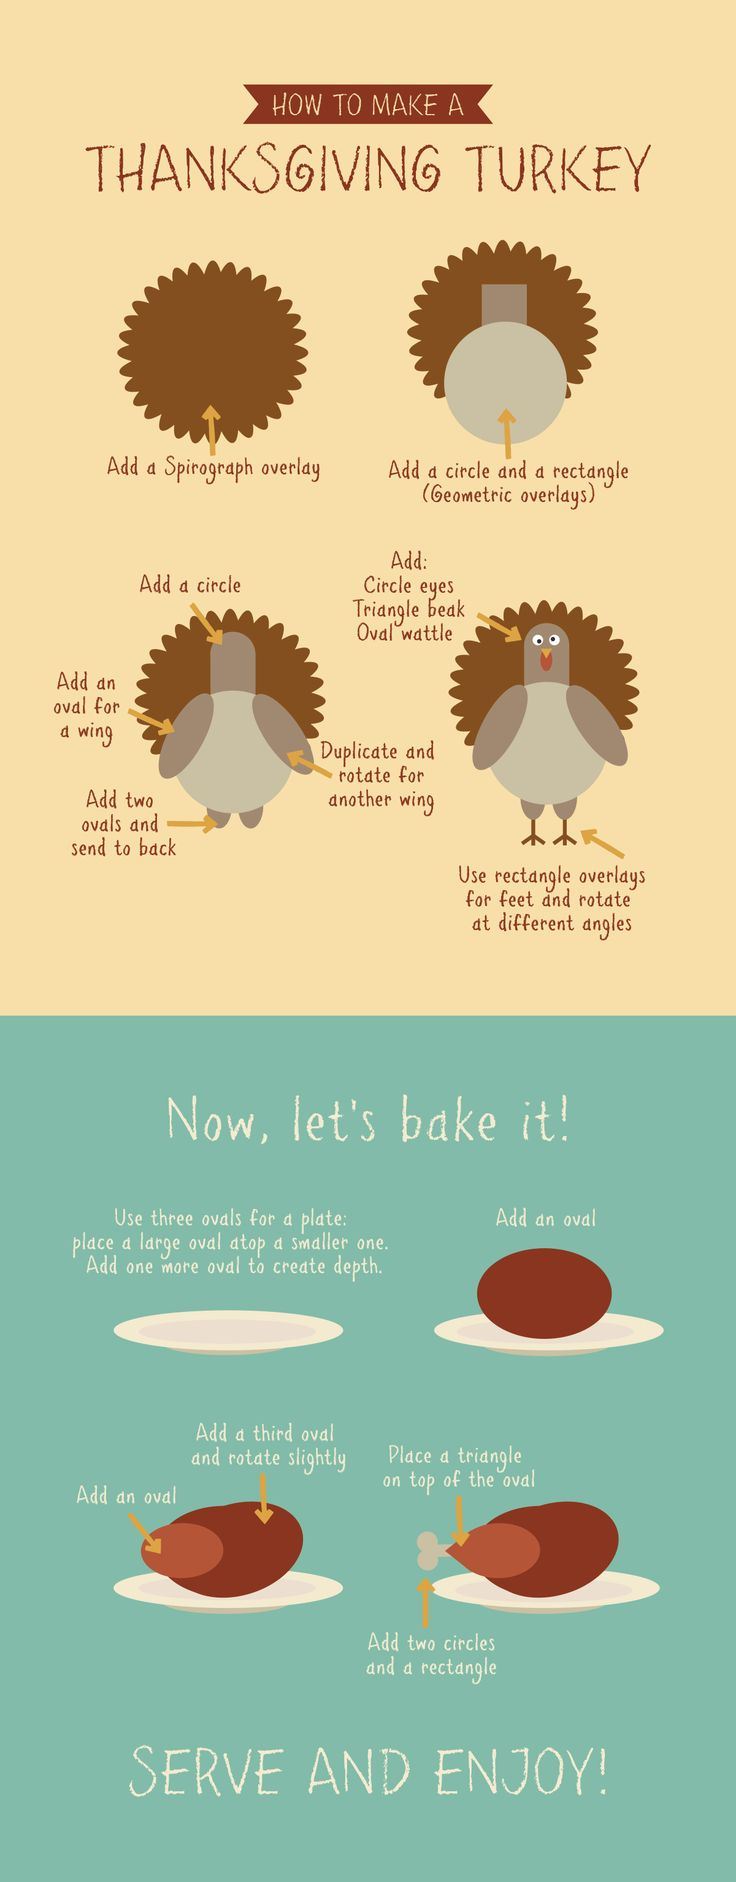 Have fun making your own Thanksgiving turkey with our graphic design tutorial.